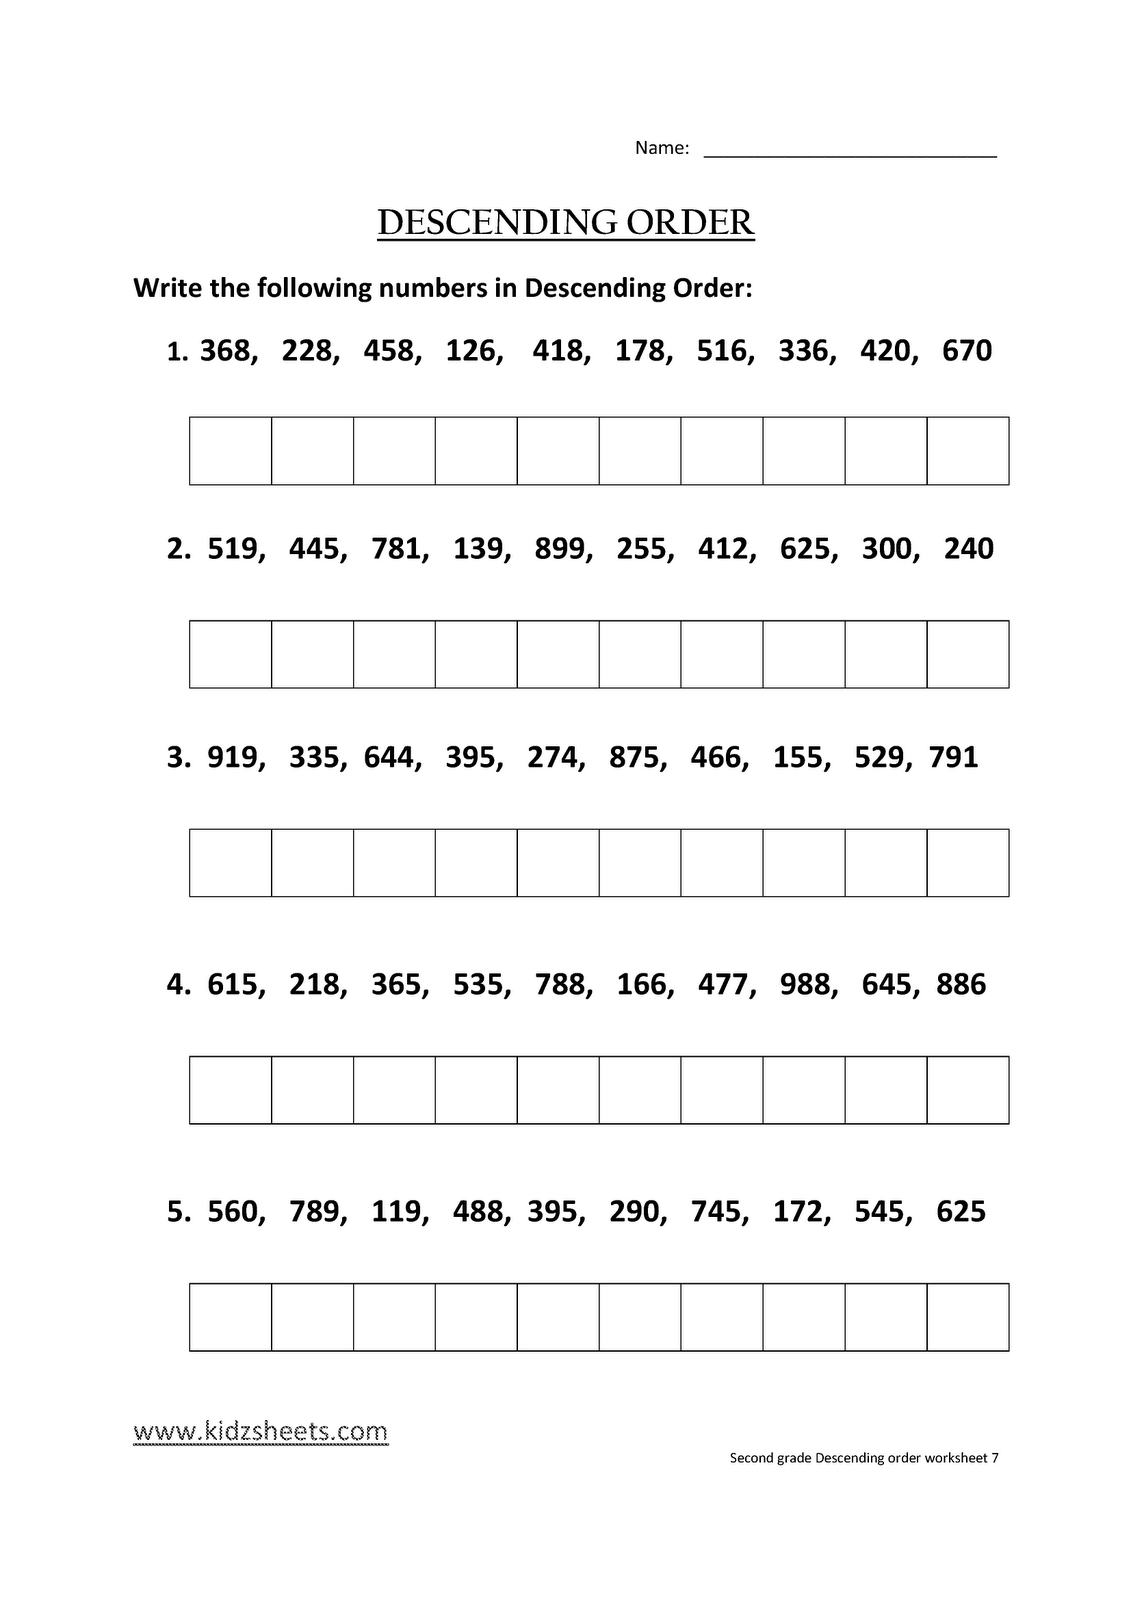 Kidz Worksheets Second Grade Descending Order Worksheet7